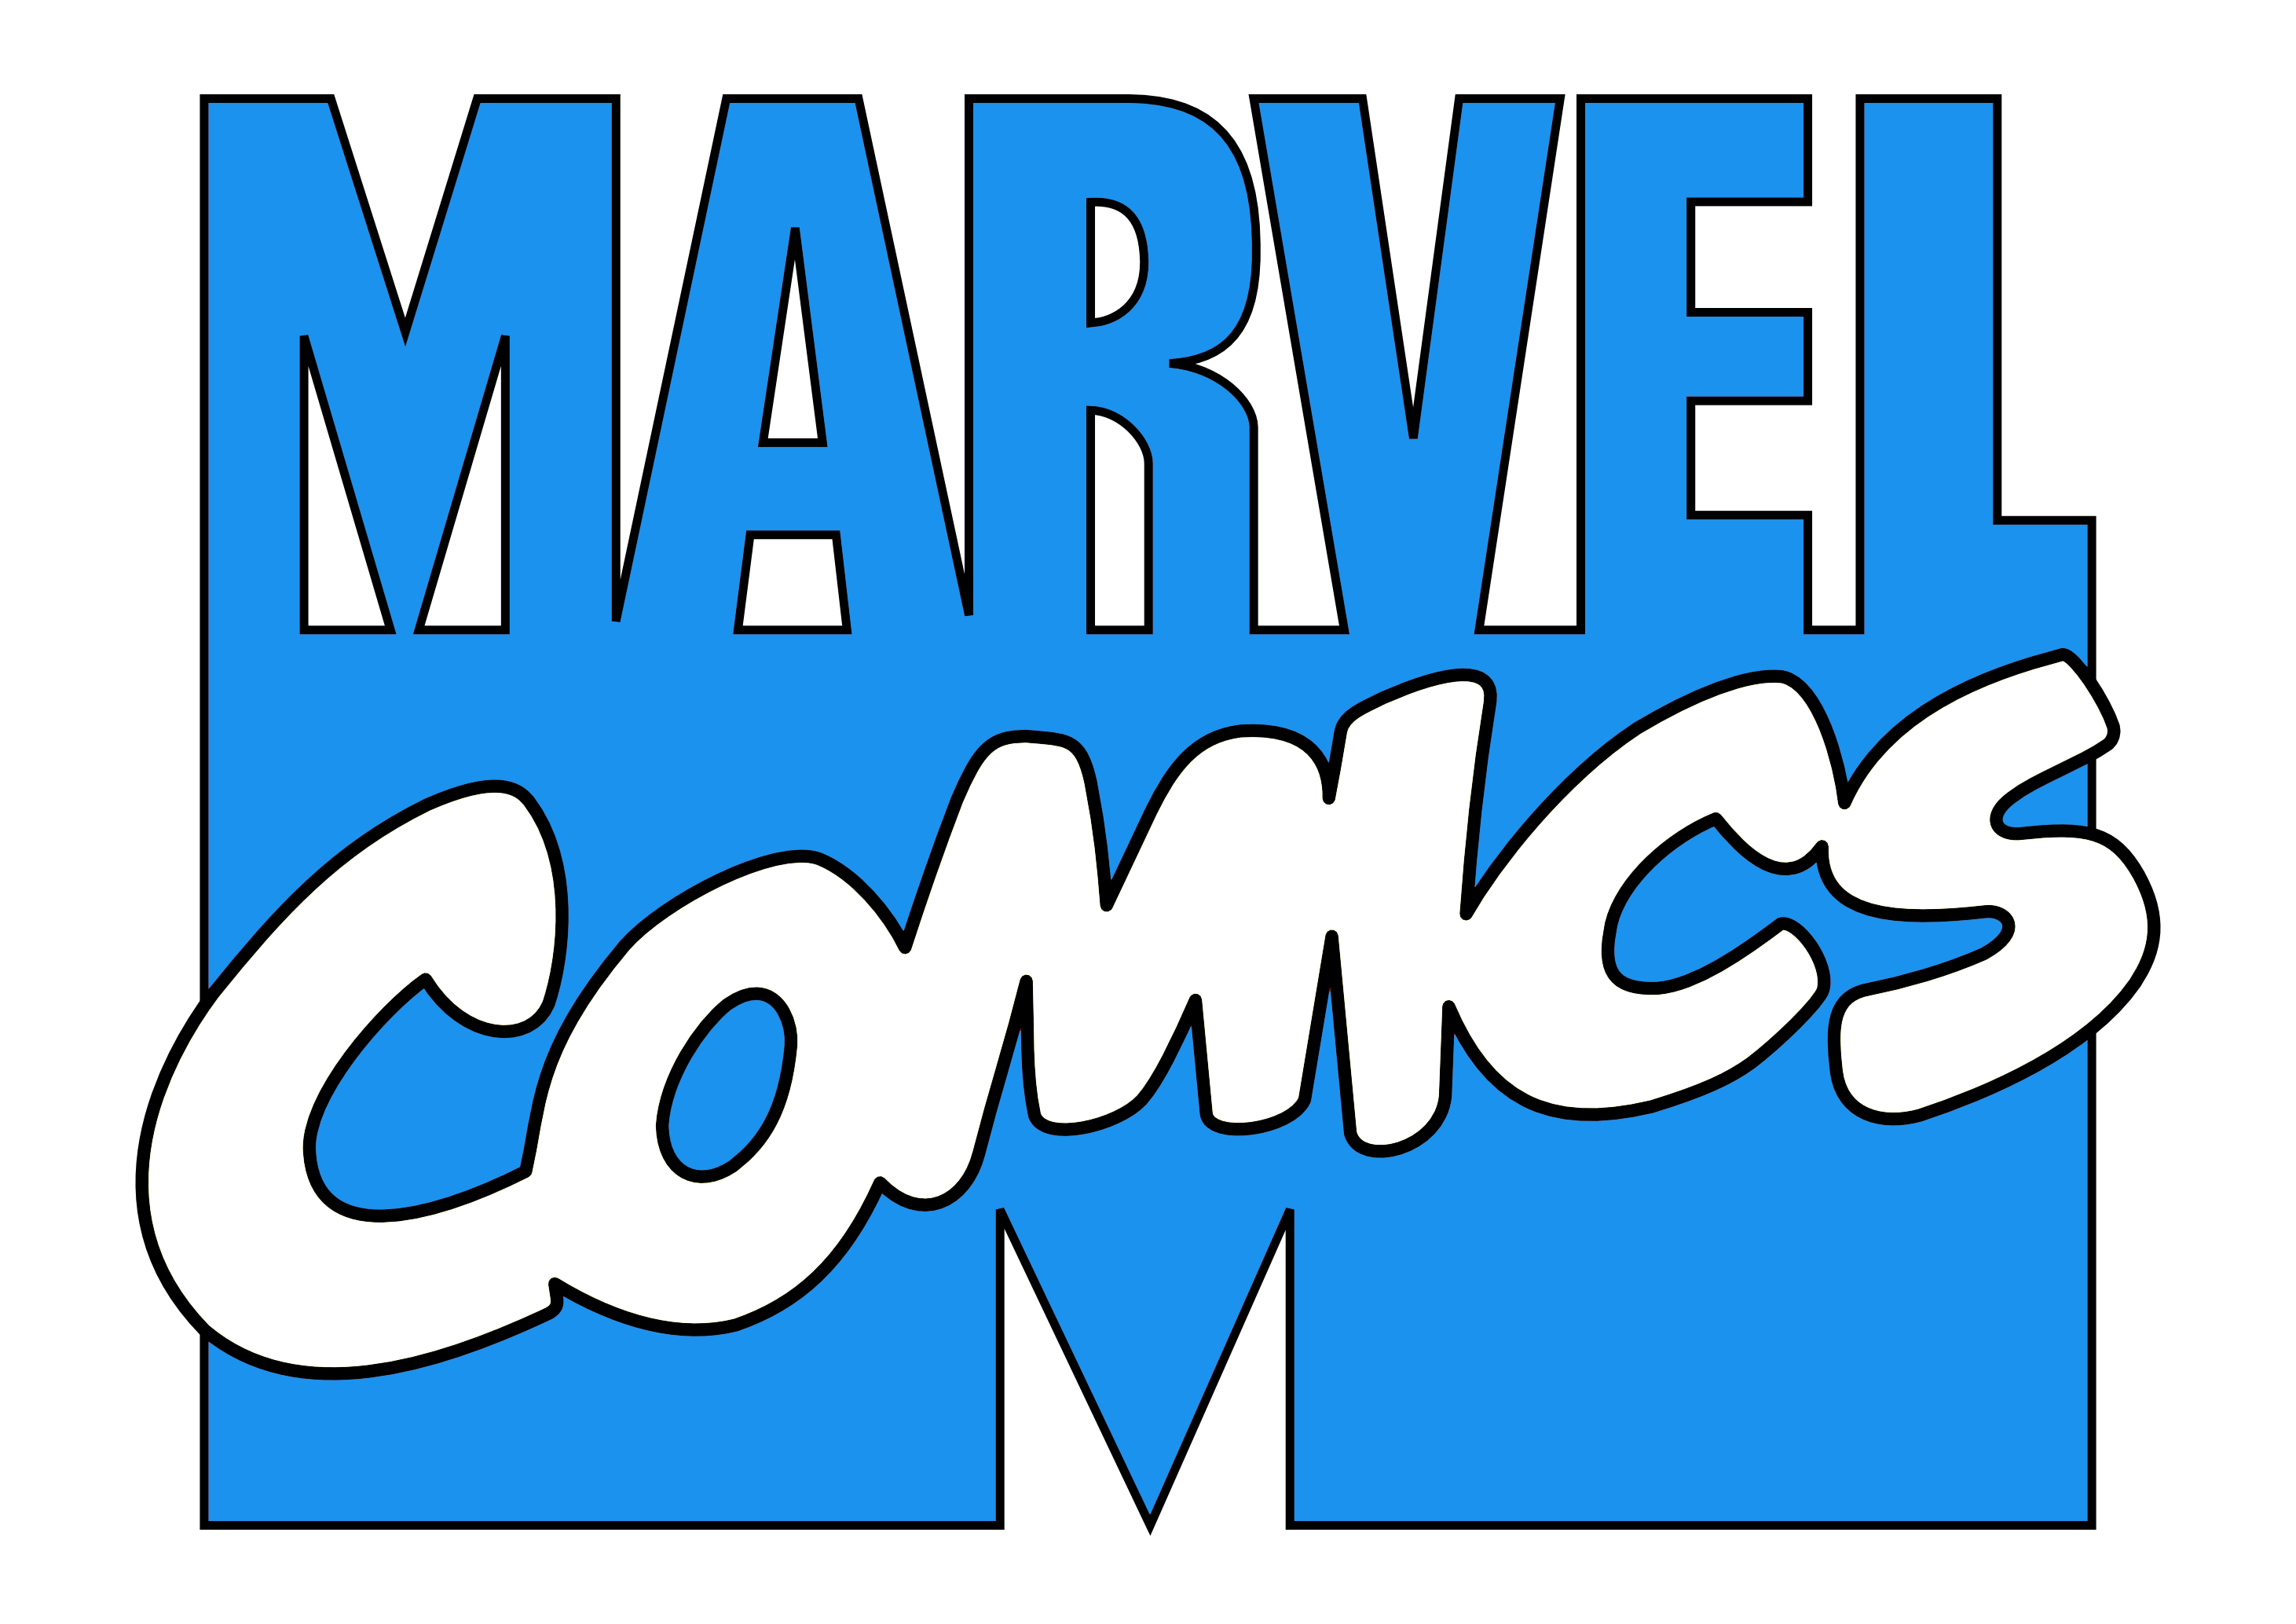 1980s 90s marvel comics logo blue white by ryanthescooterguy on deviantart